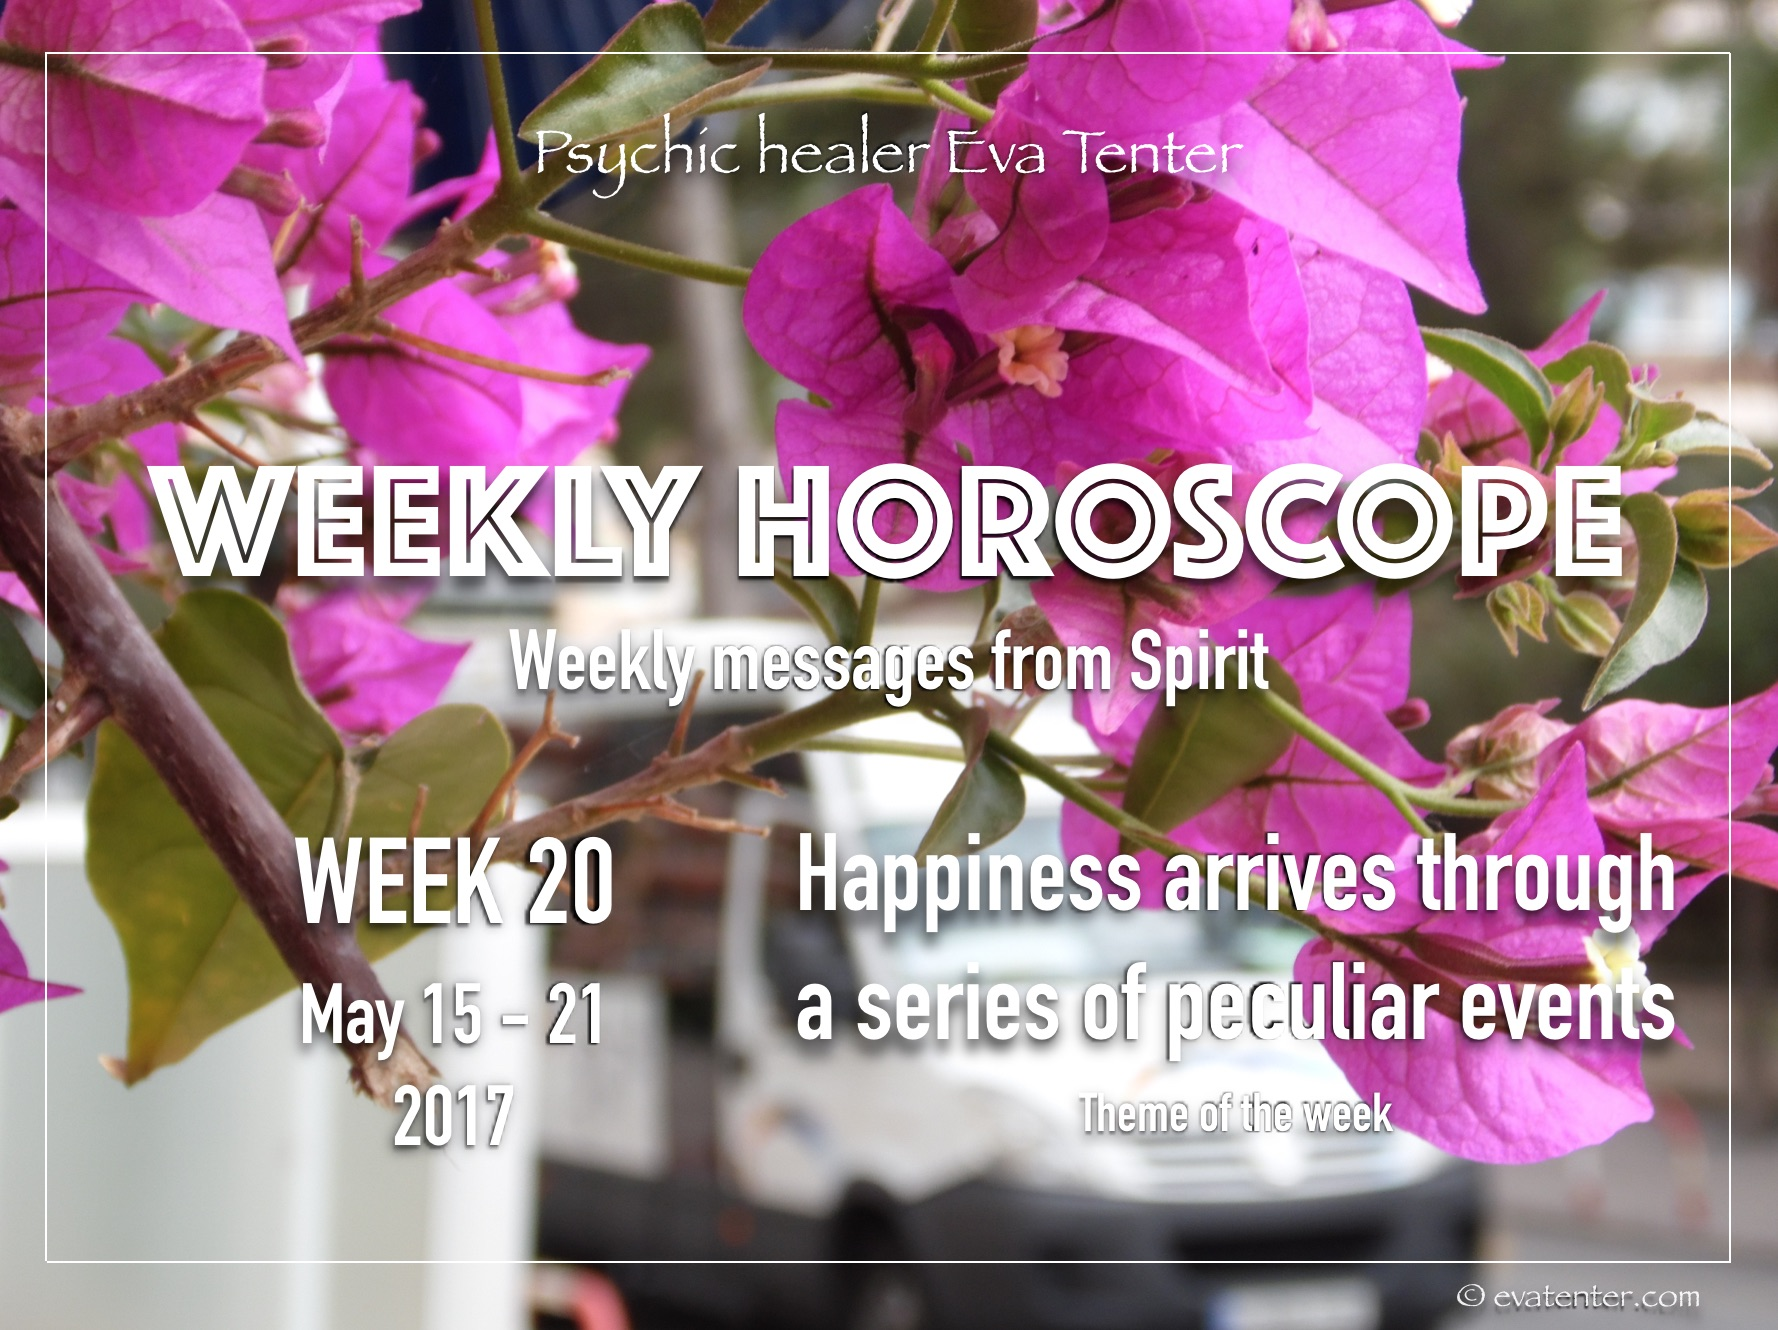 Weekly horoscope May 15-21, 2017 #horoscope #psychictarot